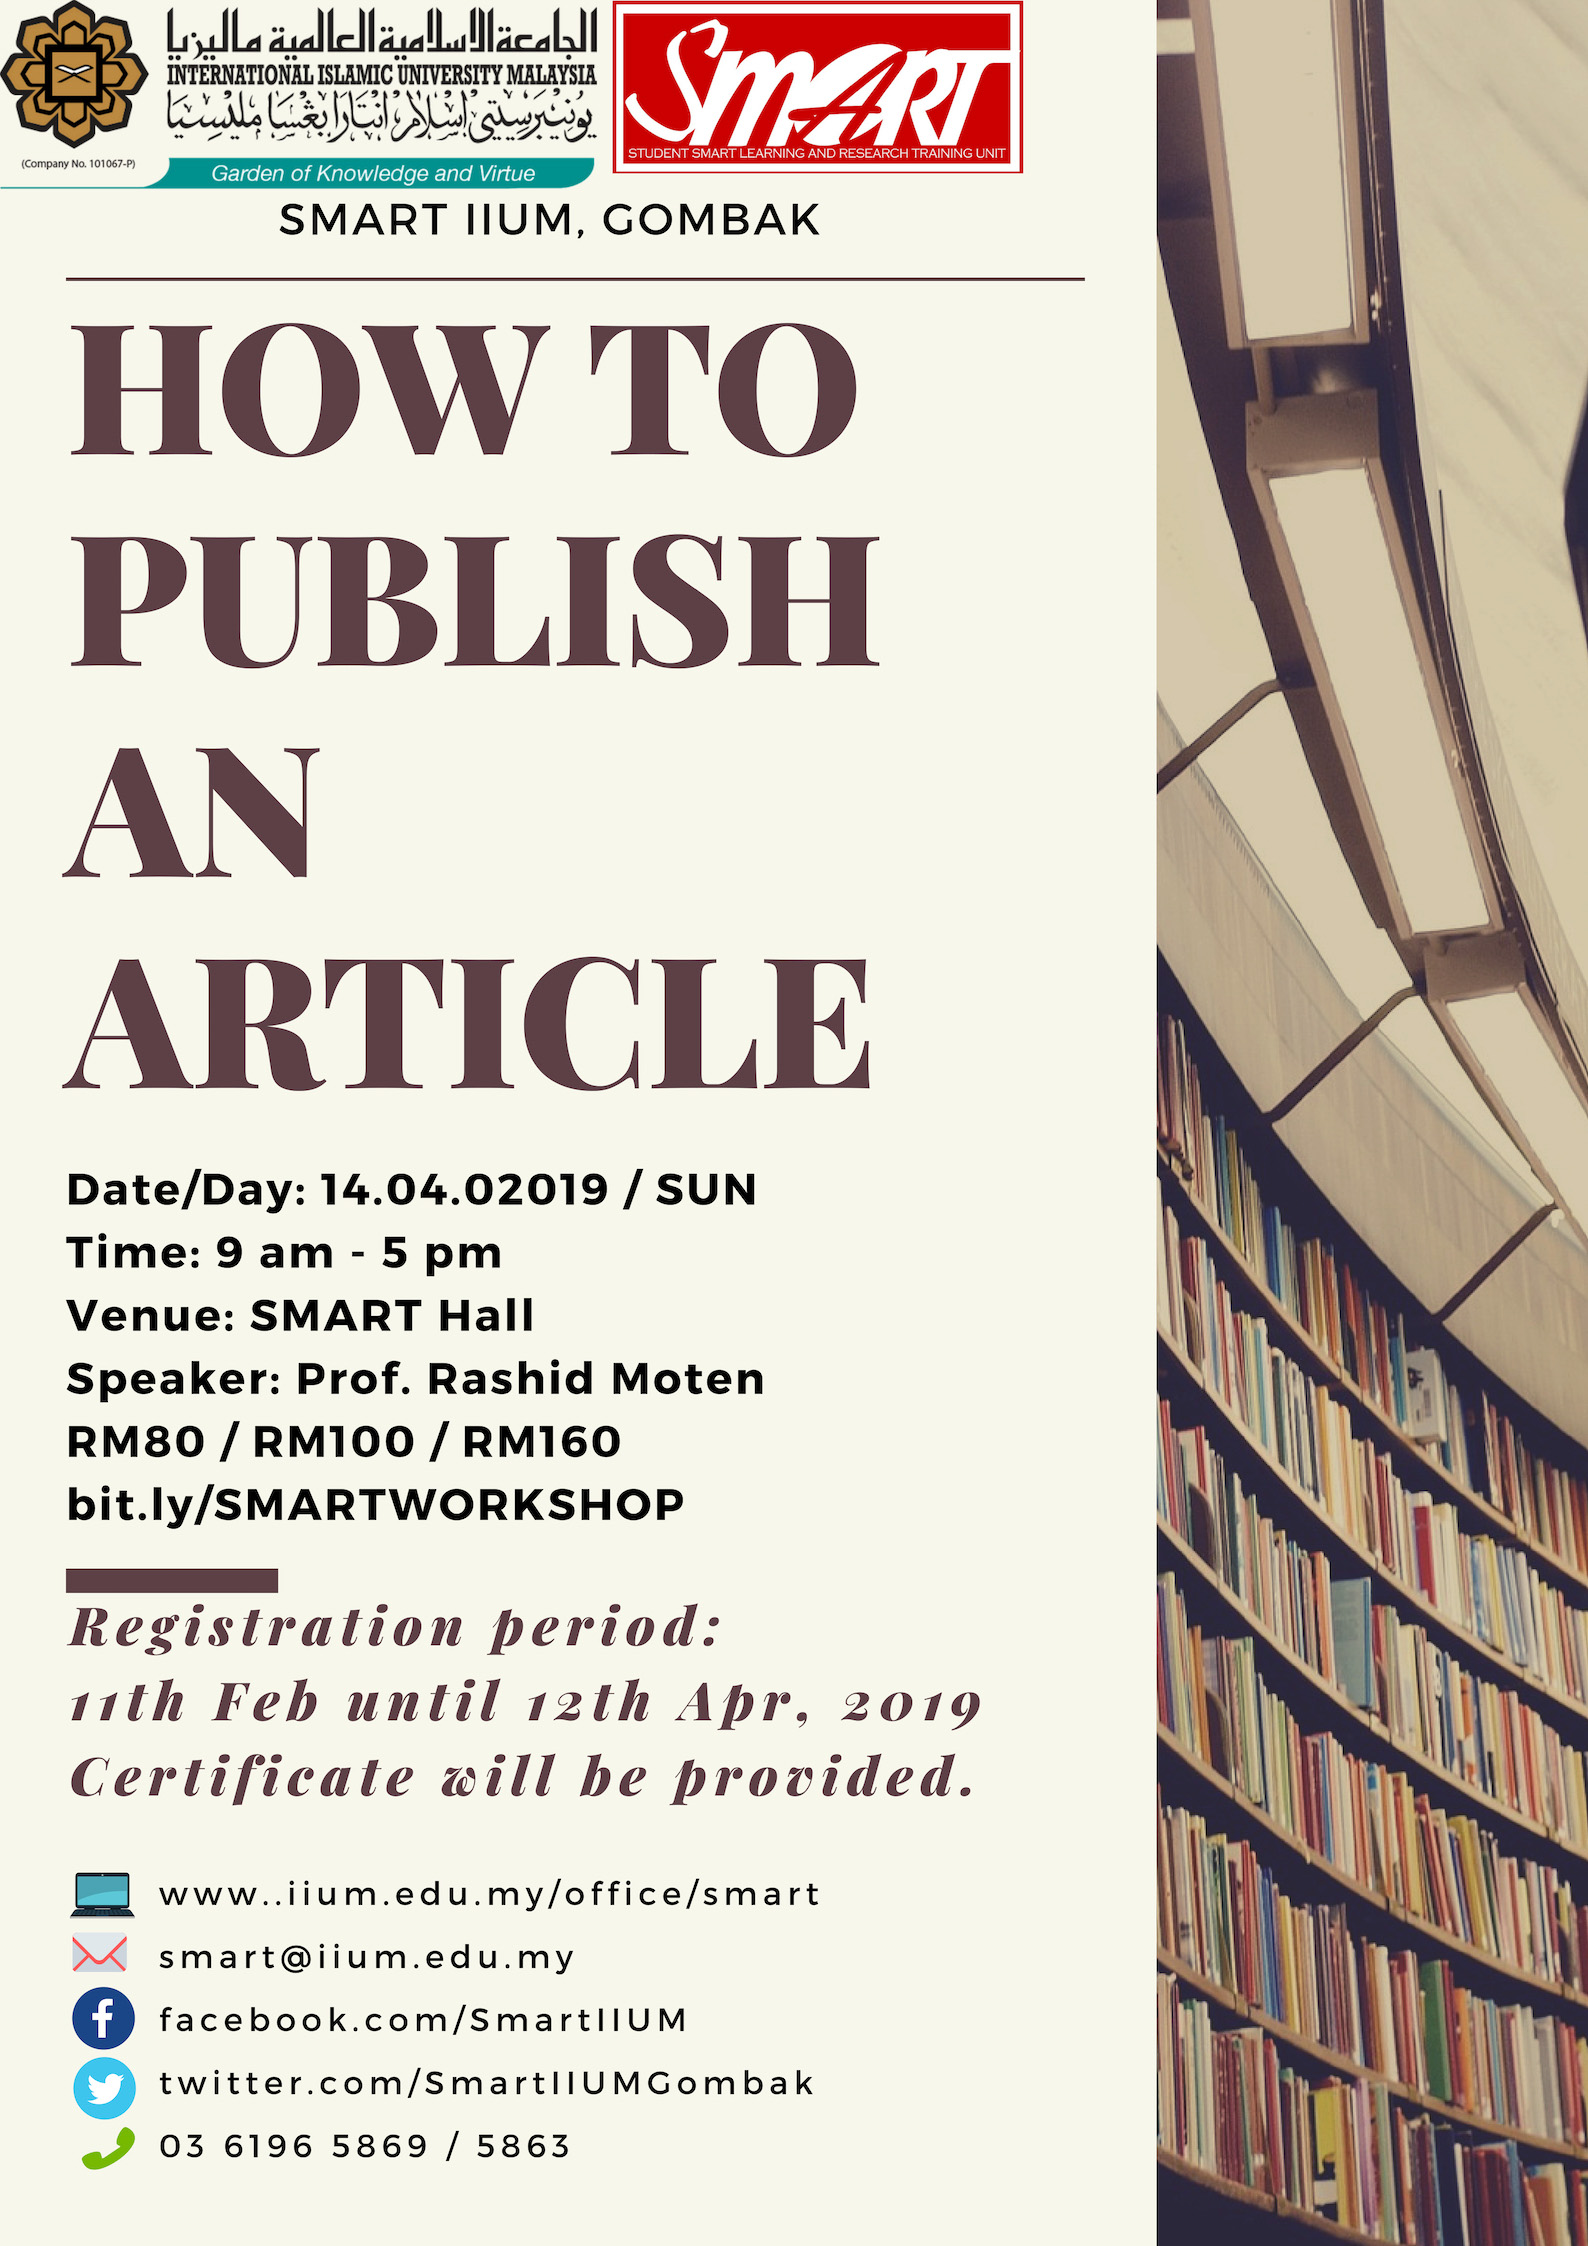 WORKSHOP : HOW TO PUBLISH AN ARTICLE